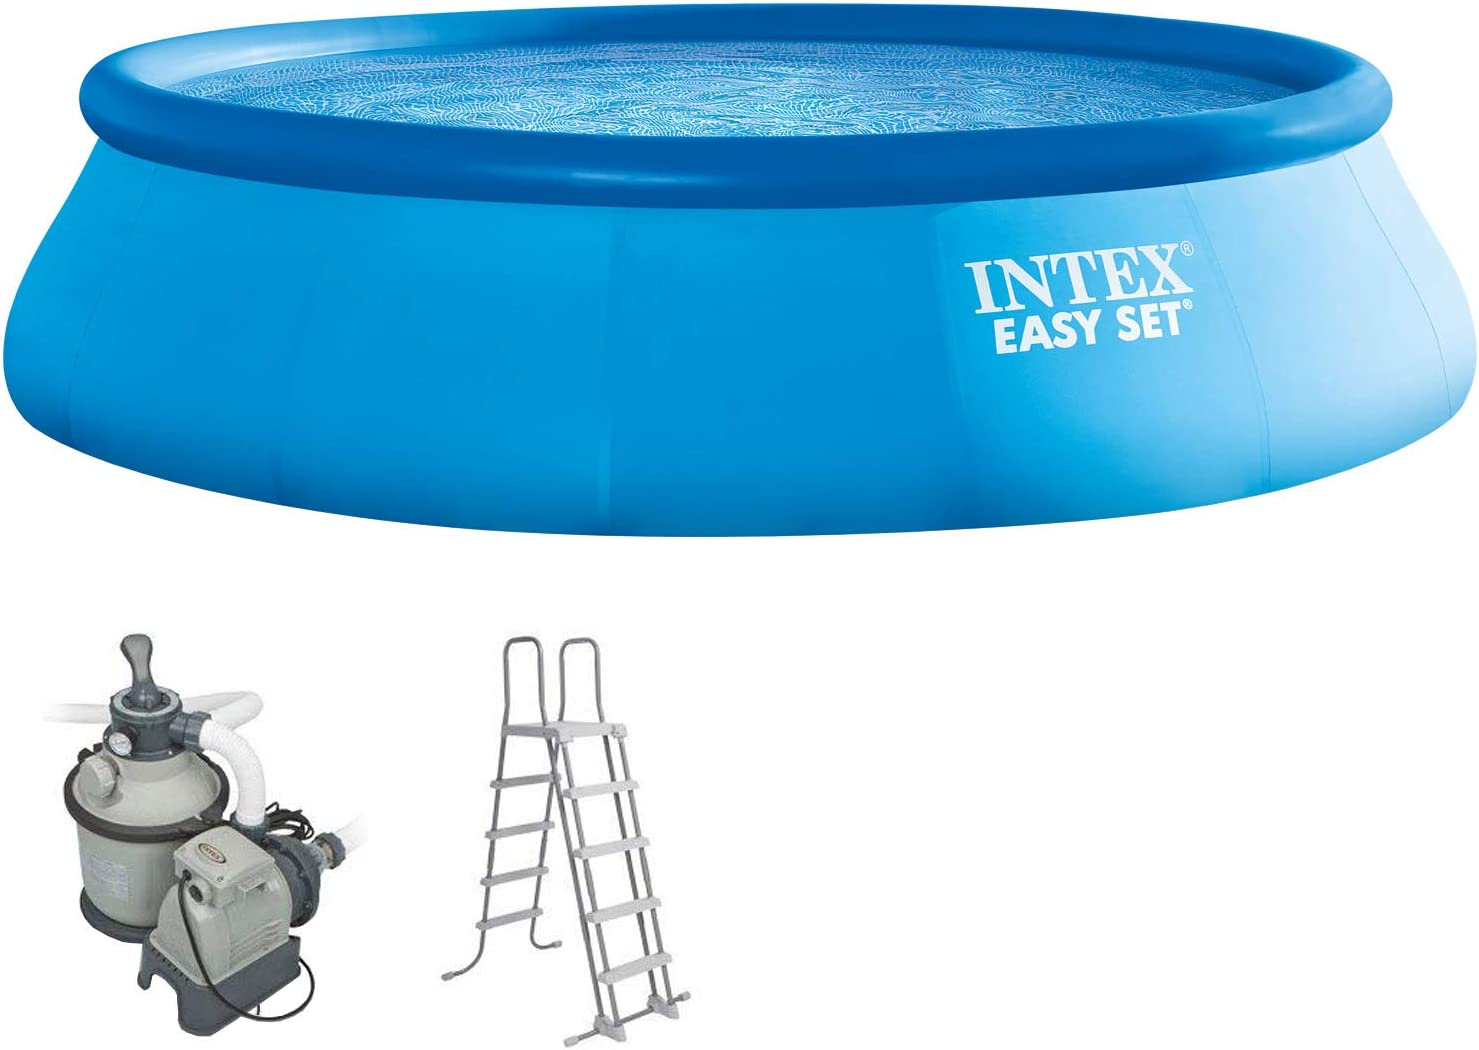 Intex 549 x 132 cm Easy Kit compuesto por swimming de Pool, filtro de arena y bomba de piscina de escalera 289034: Amazon.es: Jardín